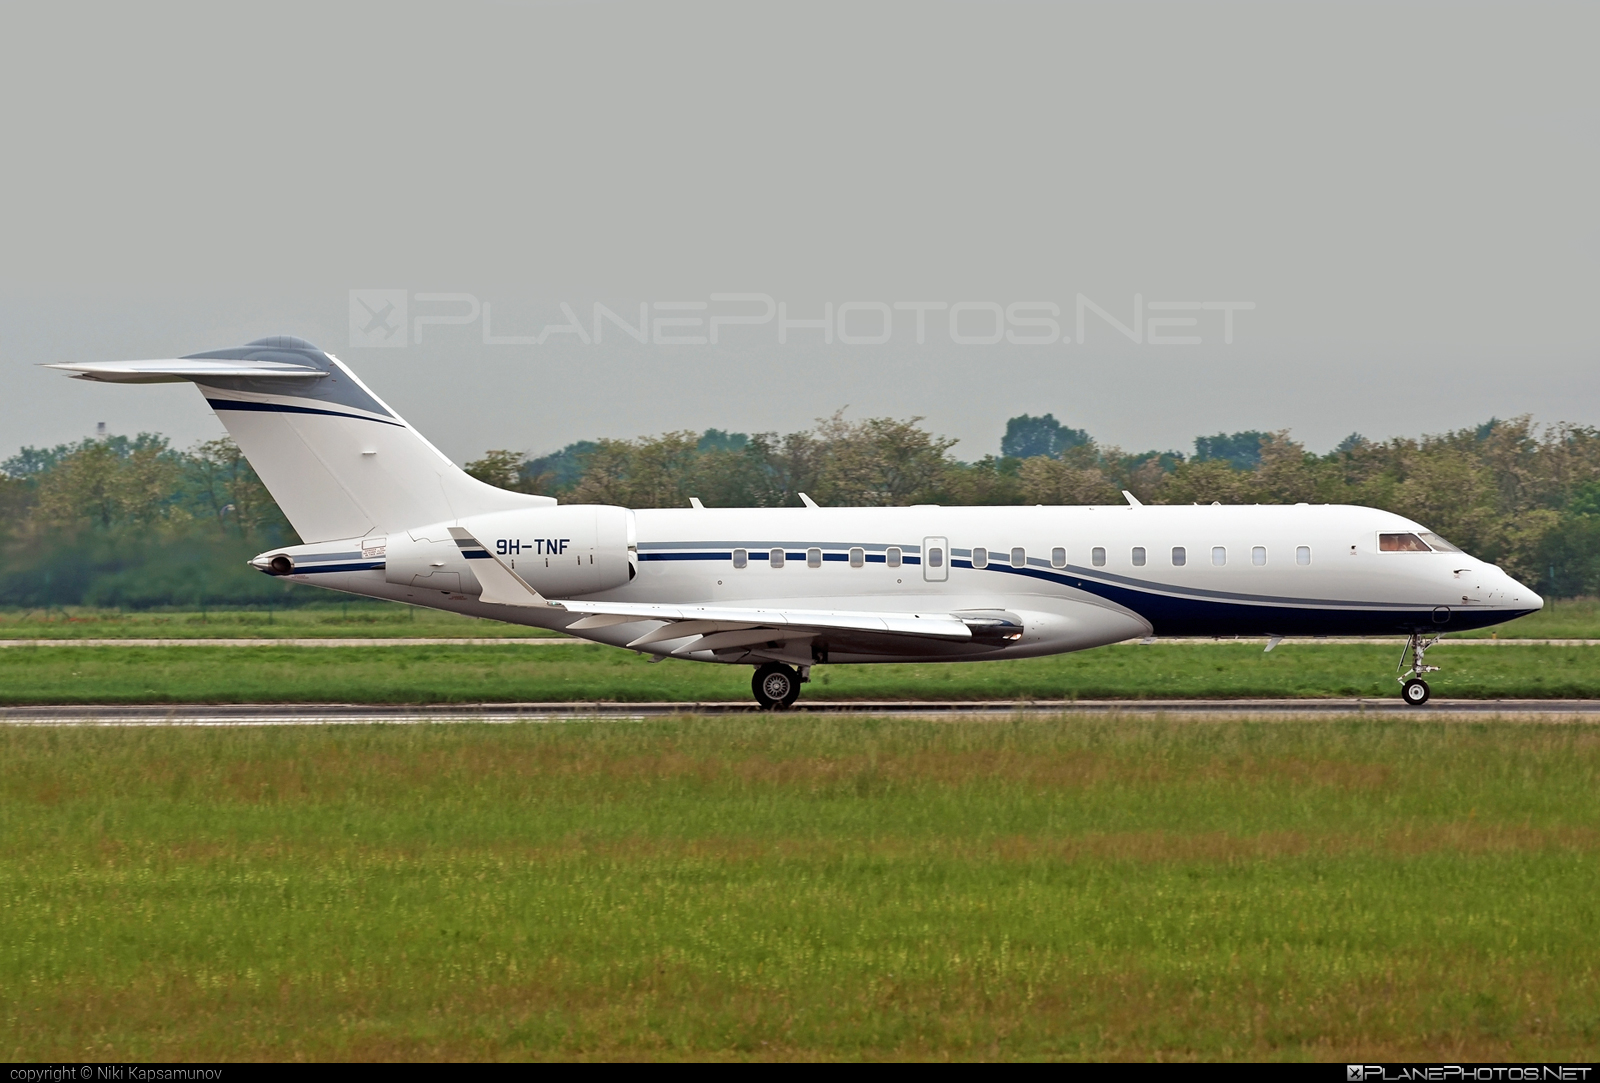 Bombardier Global 6000 (BD-700-1A10) - 9H-TNF operated by Albinati Aeronautics #albinatiaeronautics #bd7001a10 #bombardier #bombardierglobal6000 #global6000